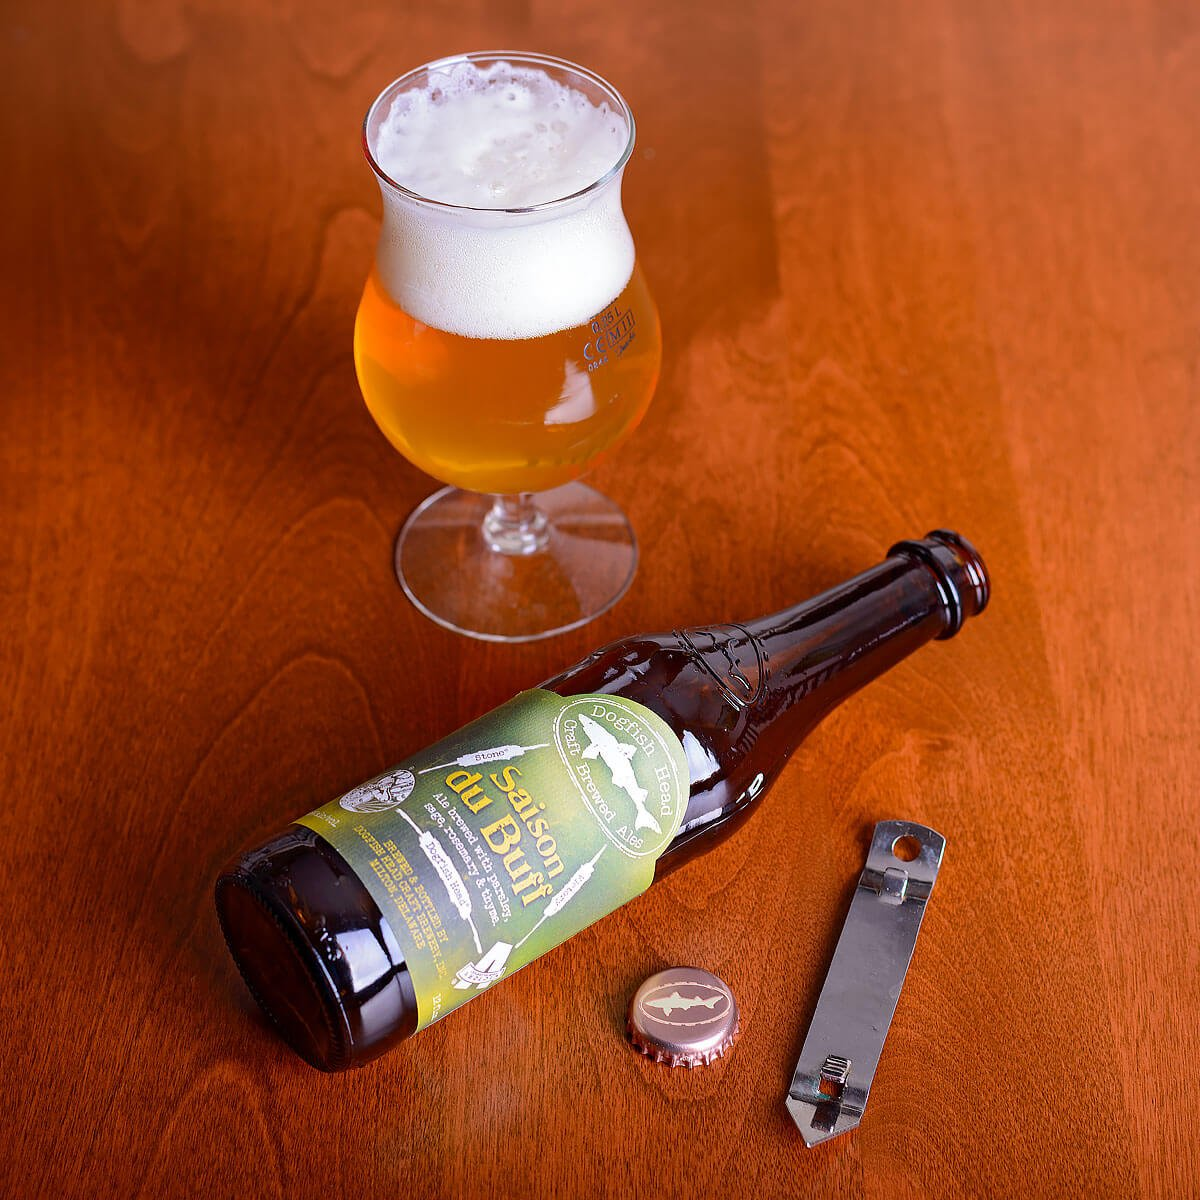 Saison Du BUFF, a Belgian-style Saison brewed in collaboration with Dogfish Head Craft Brewery, Stone Brewing Co., and Victory Brewing.